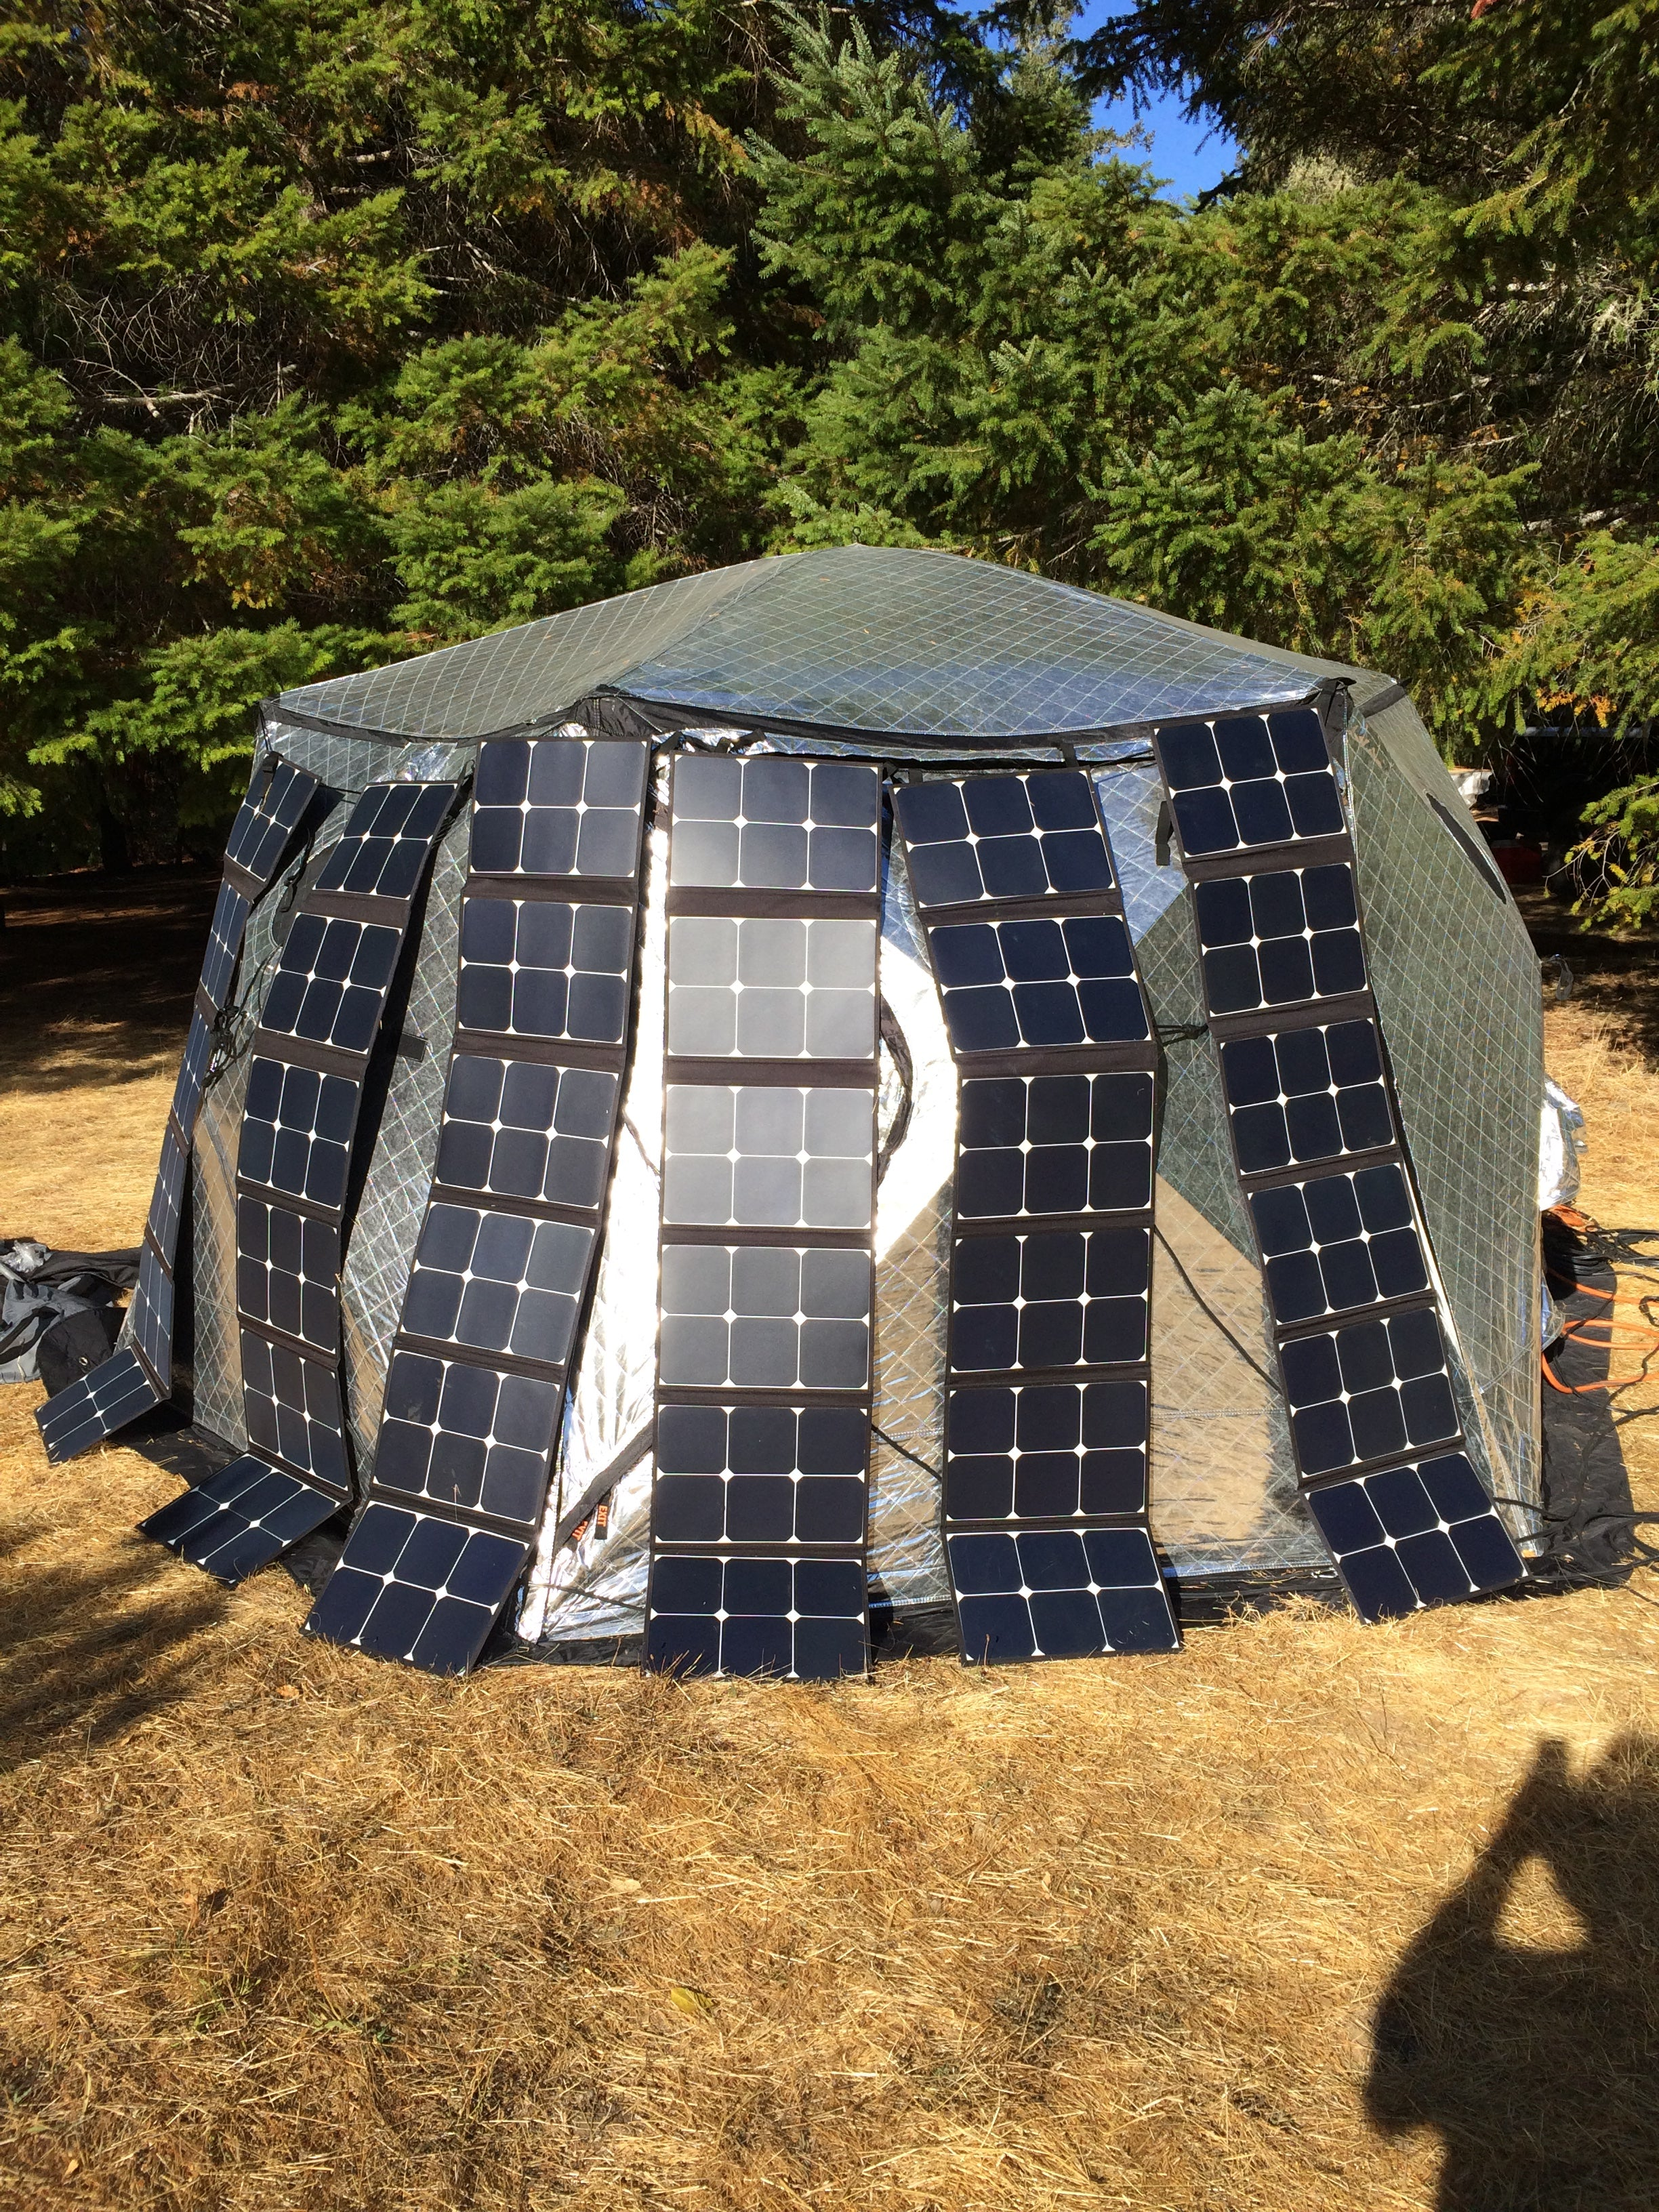 Helios Solar Generator using for Camping